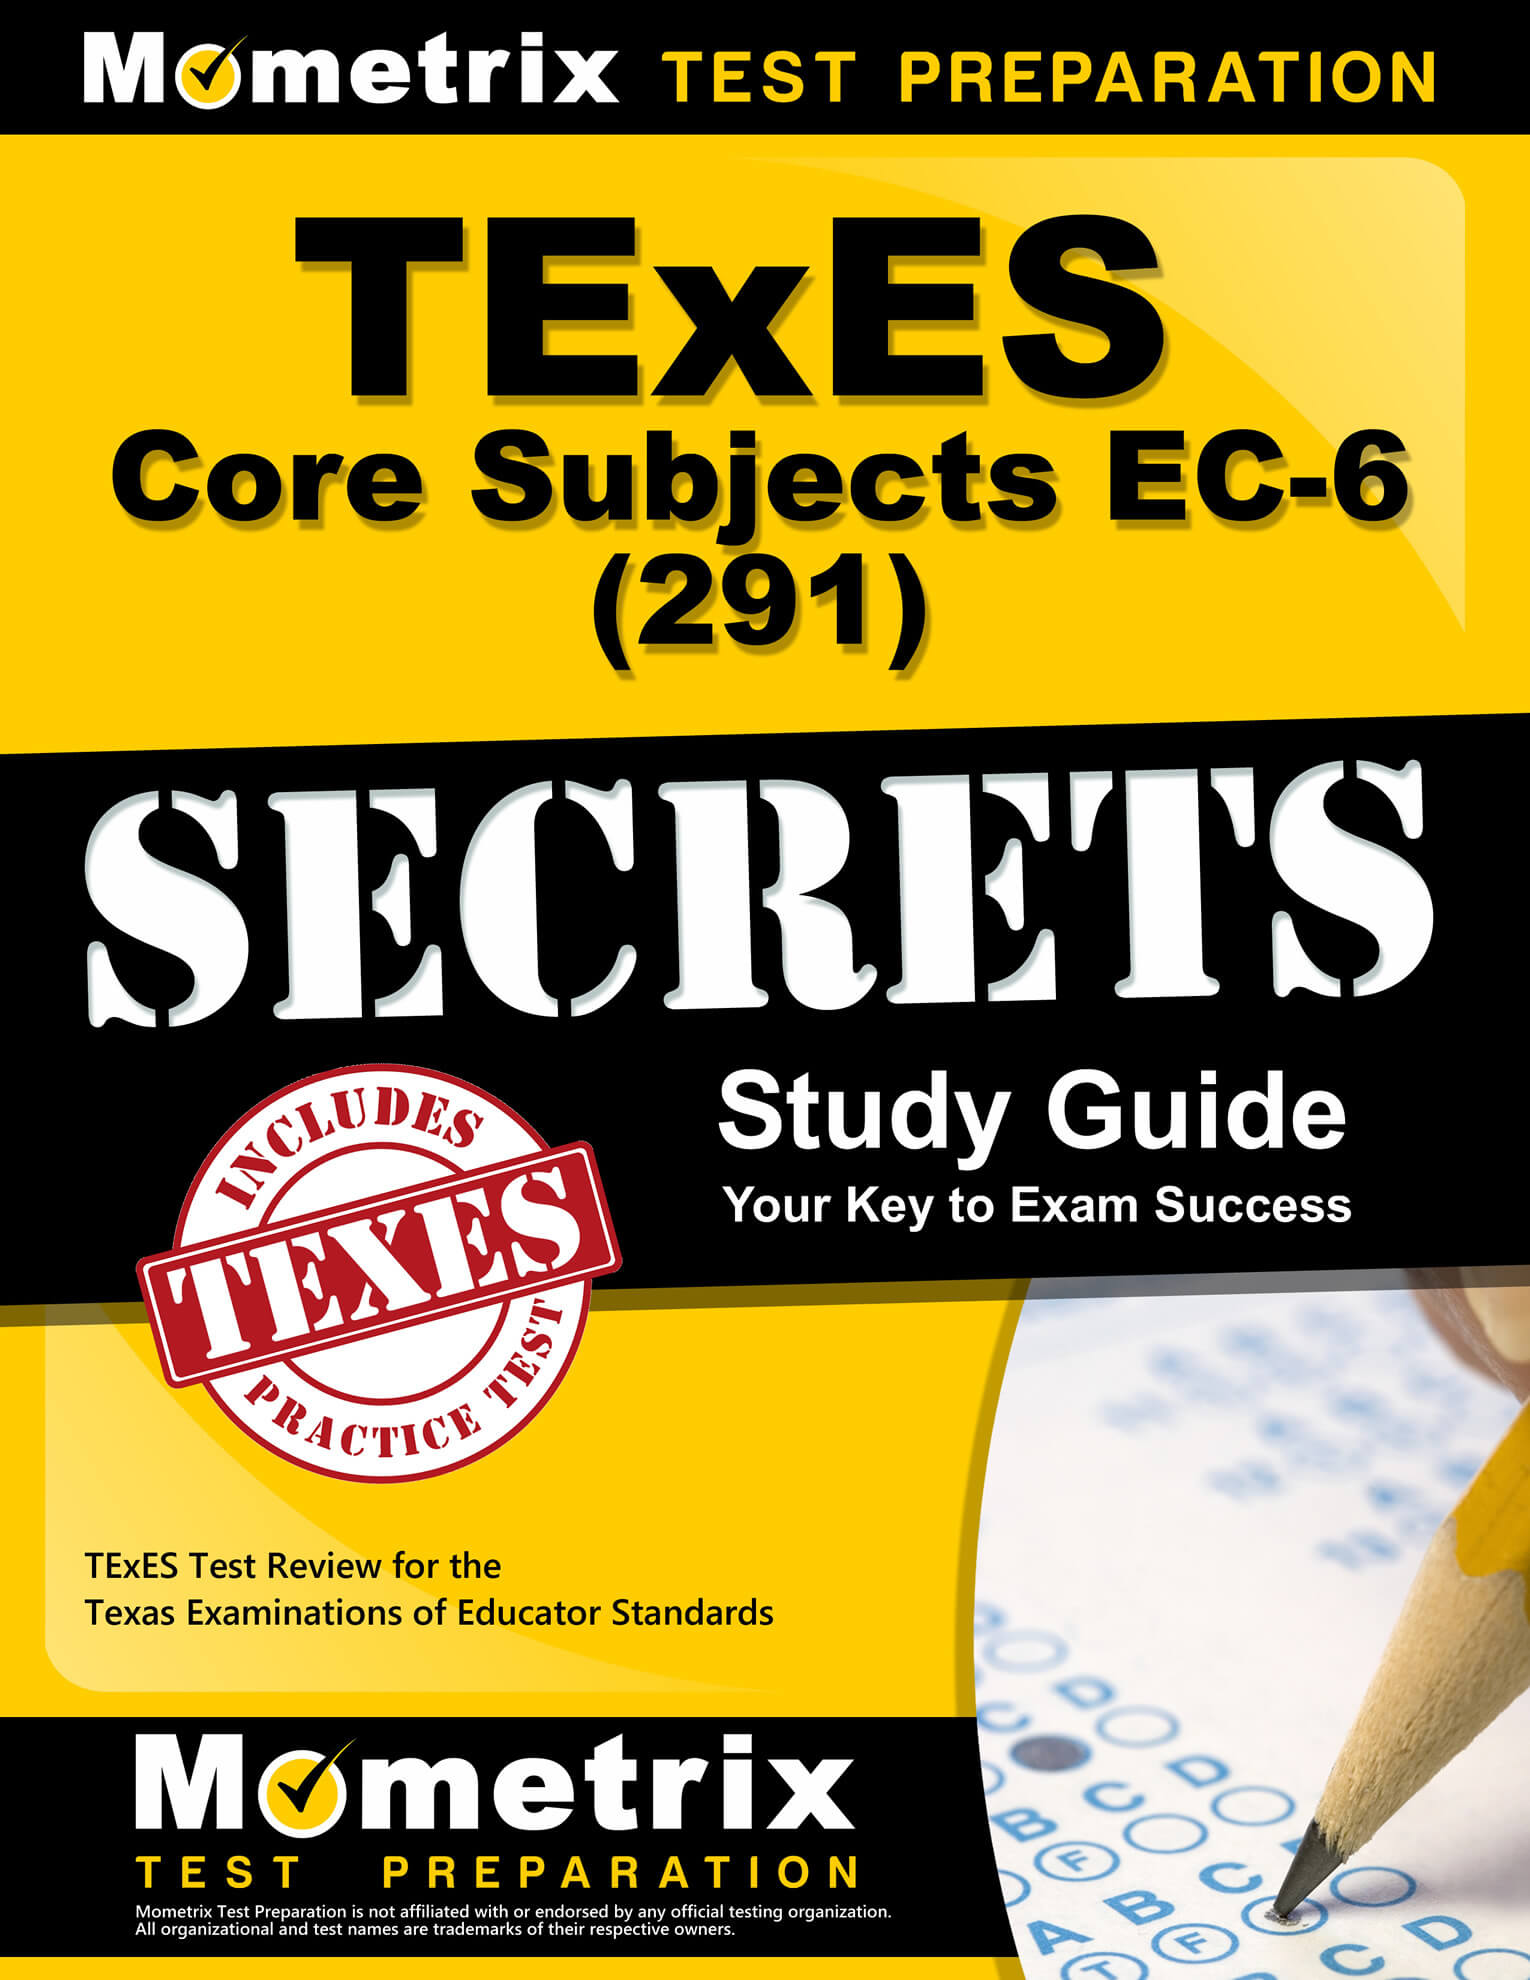 TExES Core Subjects EC-6 Study Guide